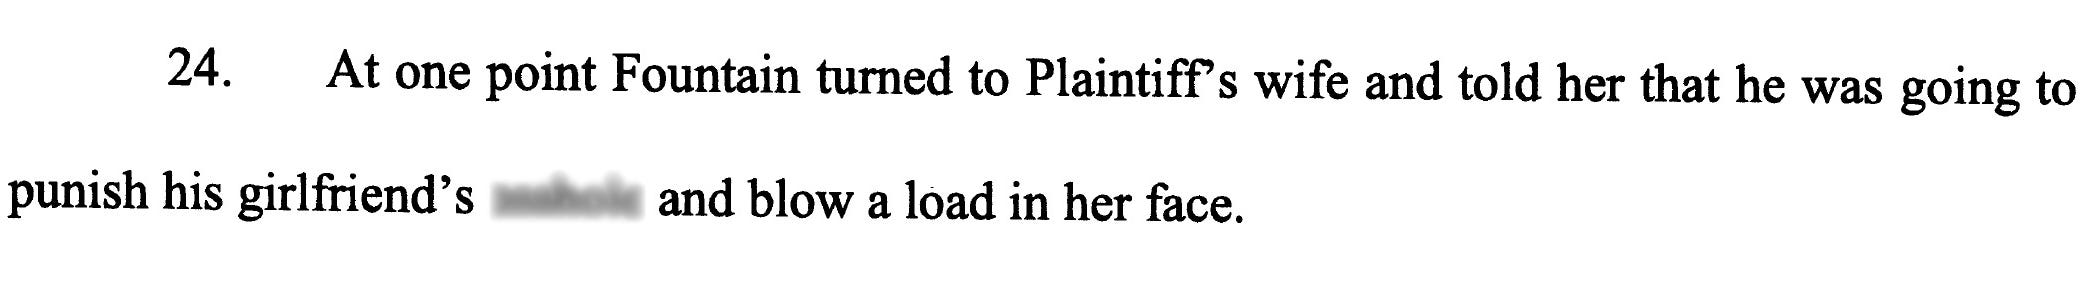 Excerpt from a lawsuit filed by Manalapan Police Officer Edward Hedden alleging retaliation by Police Chief Michael Fountain after he reported this incident.